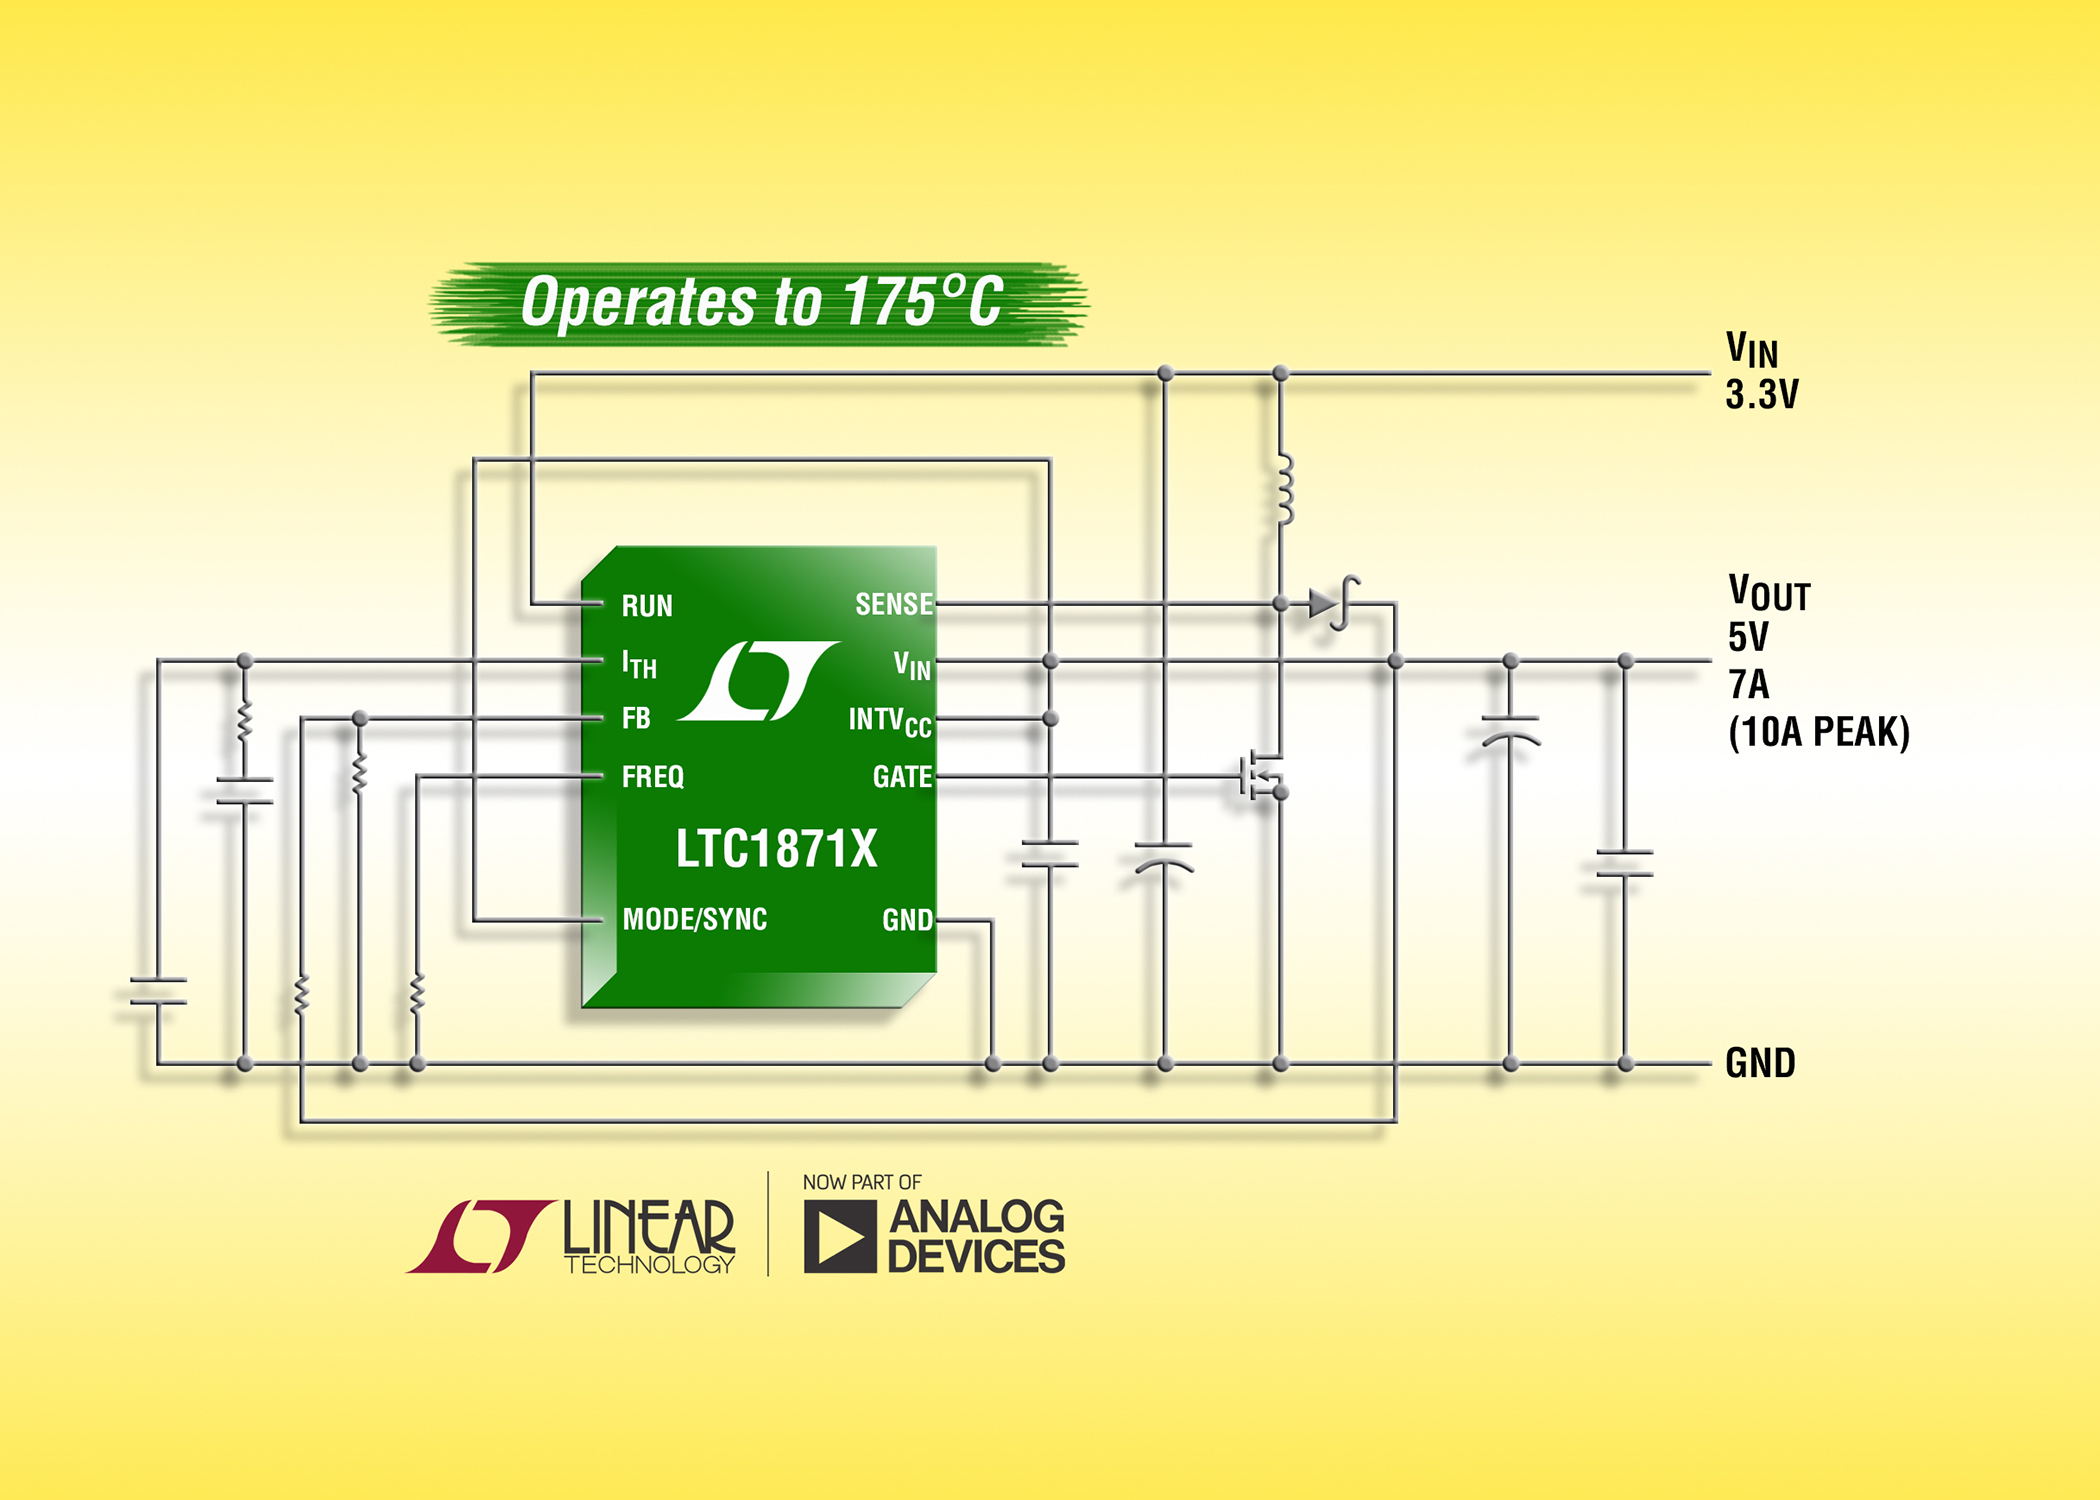 Dc Converter Configurable For Boost Sepic Or Inverter Operation Buck Inverting Flyback Controller Operates Up To 175c Read Less